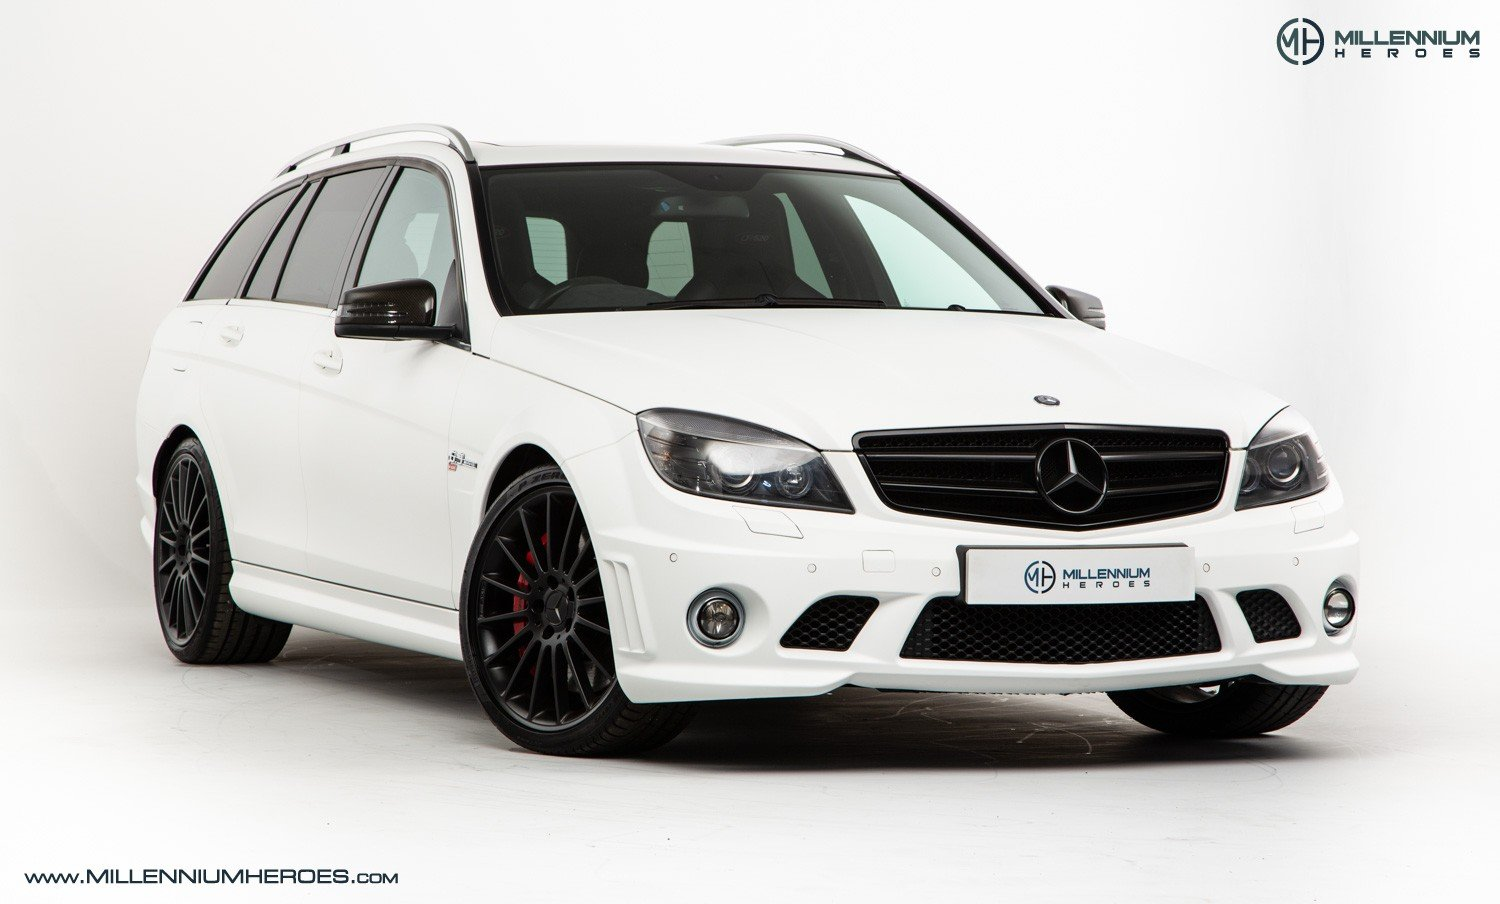 2010 MERCEDES C63 DR520 // EXCLUSIVE GB SPECIAL EDITION / 1 OF 20 For Sale (picture 2 of 6)